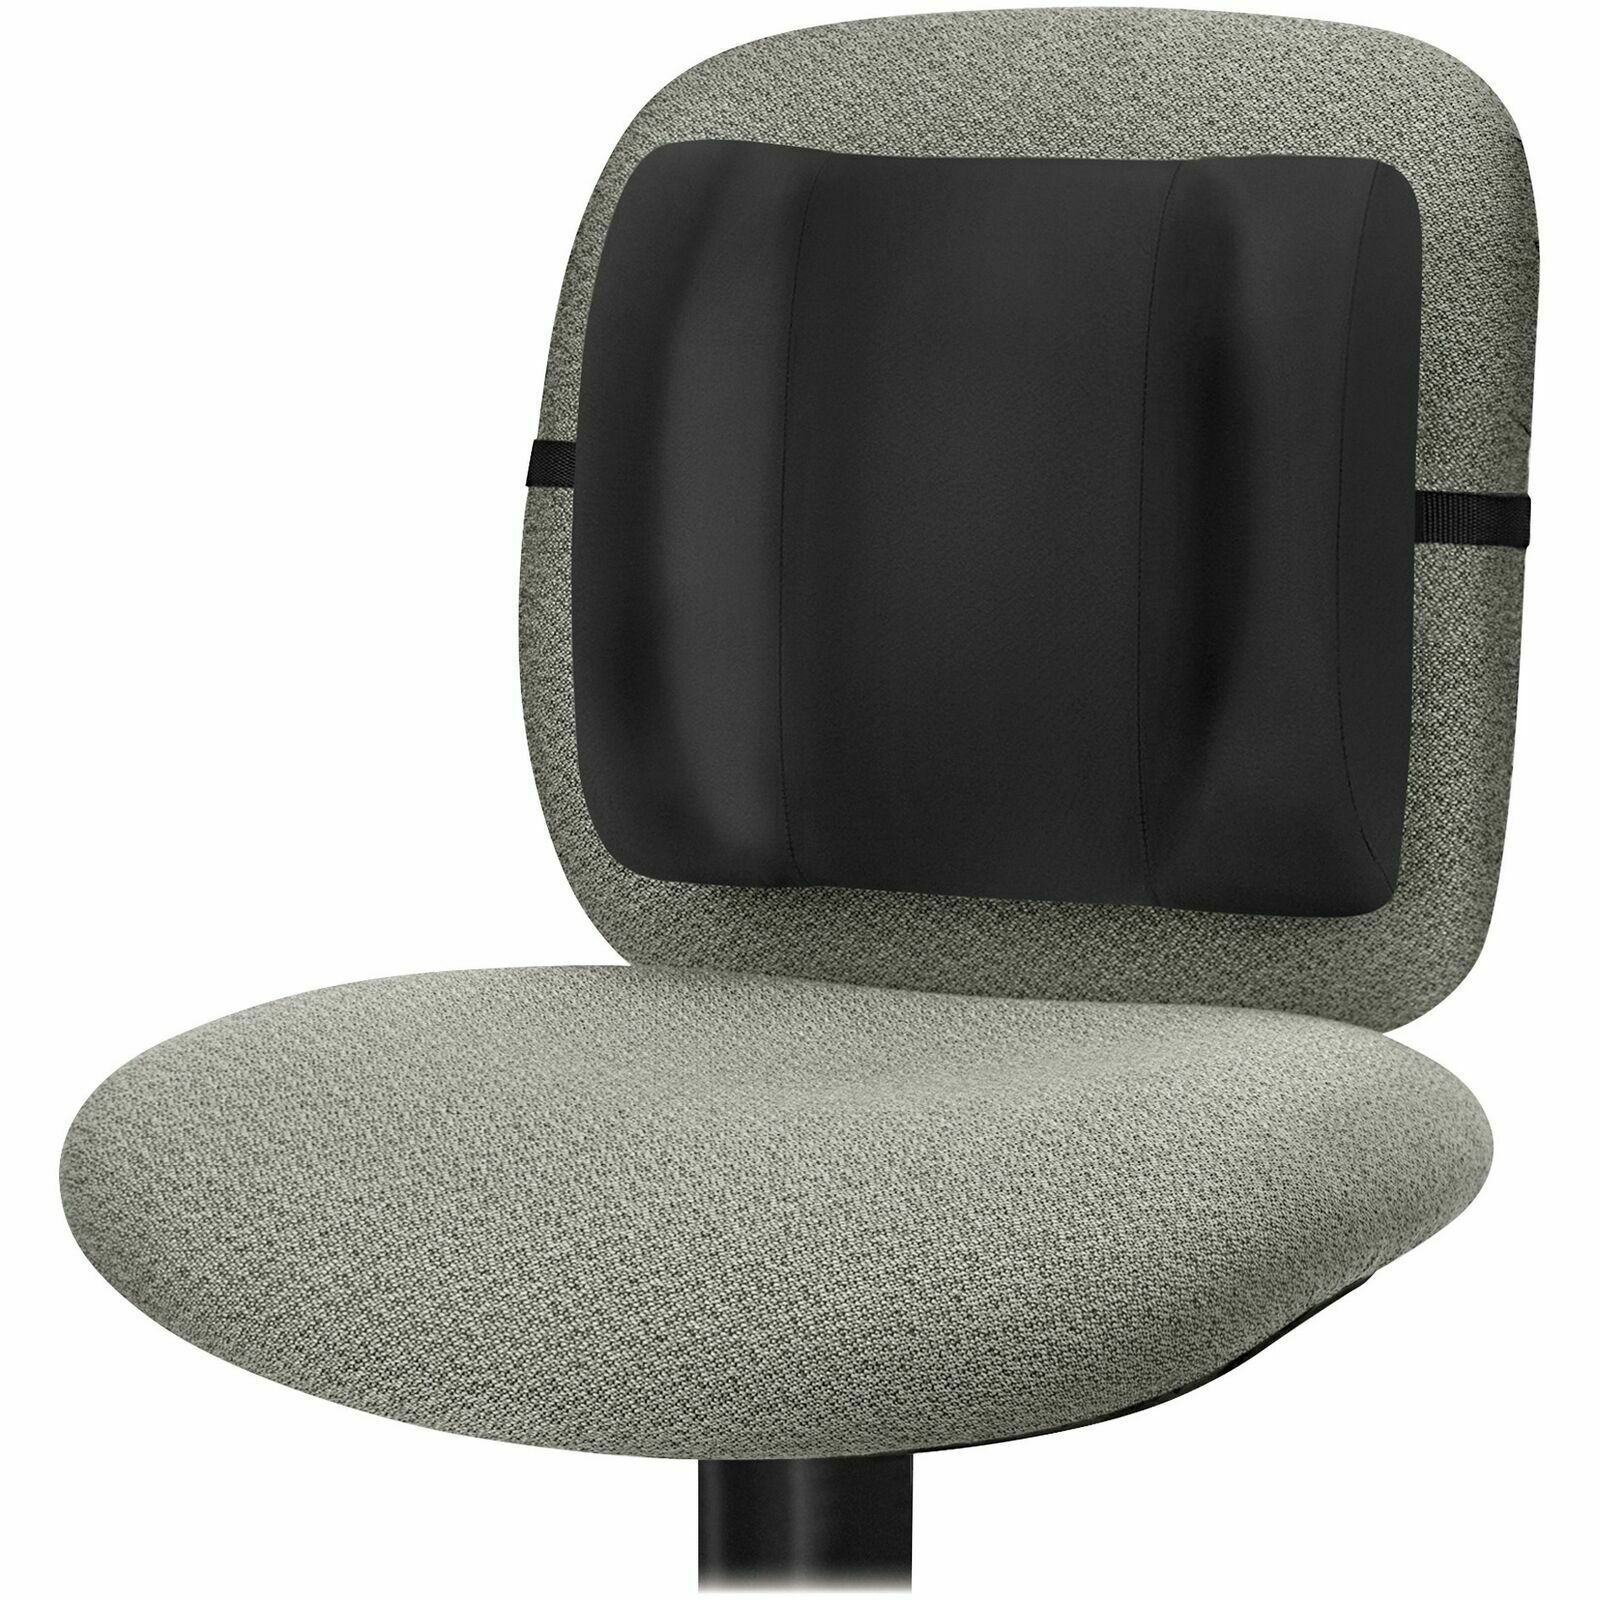 "Primary image for Fellowes Padded Backrest High Profile 13""x4""x12"" Black 91905"